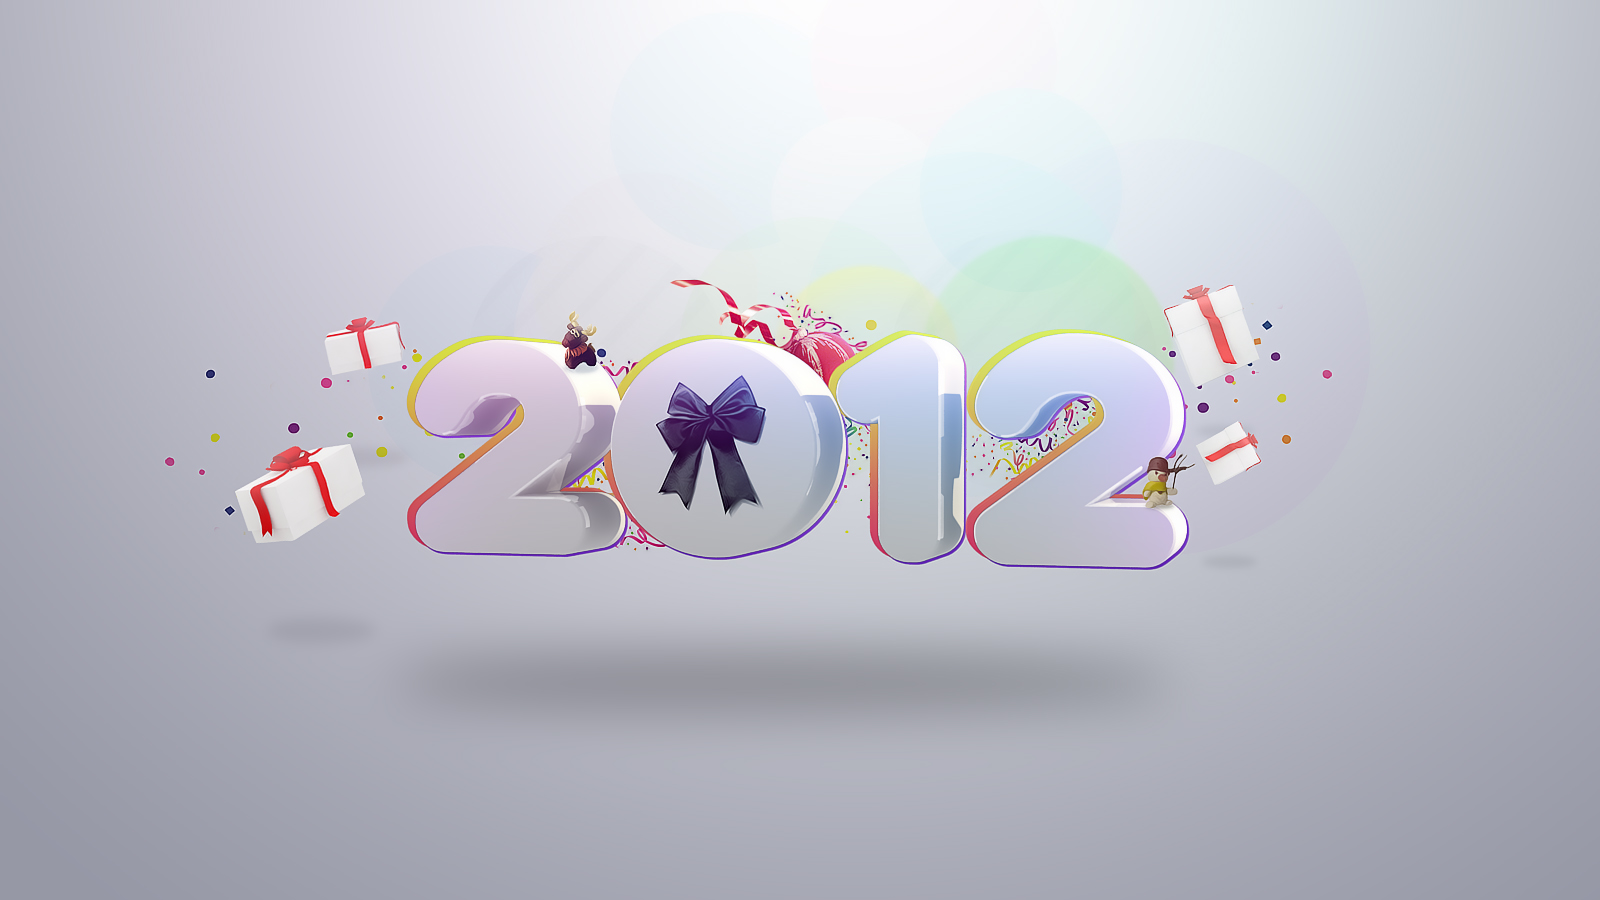 Wallpaper Mouth: Ecards for new year, cards online, e greeting cards ...